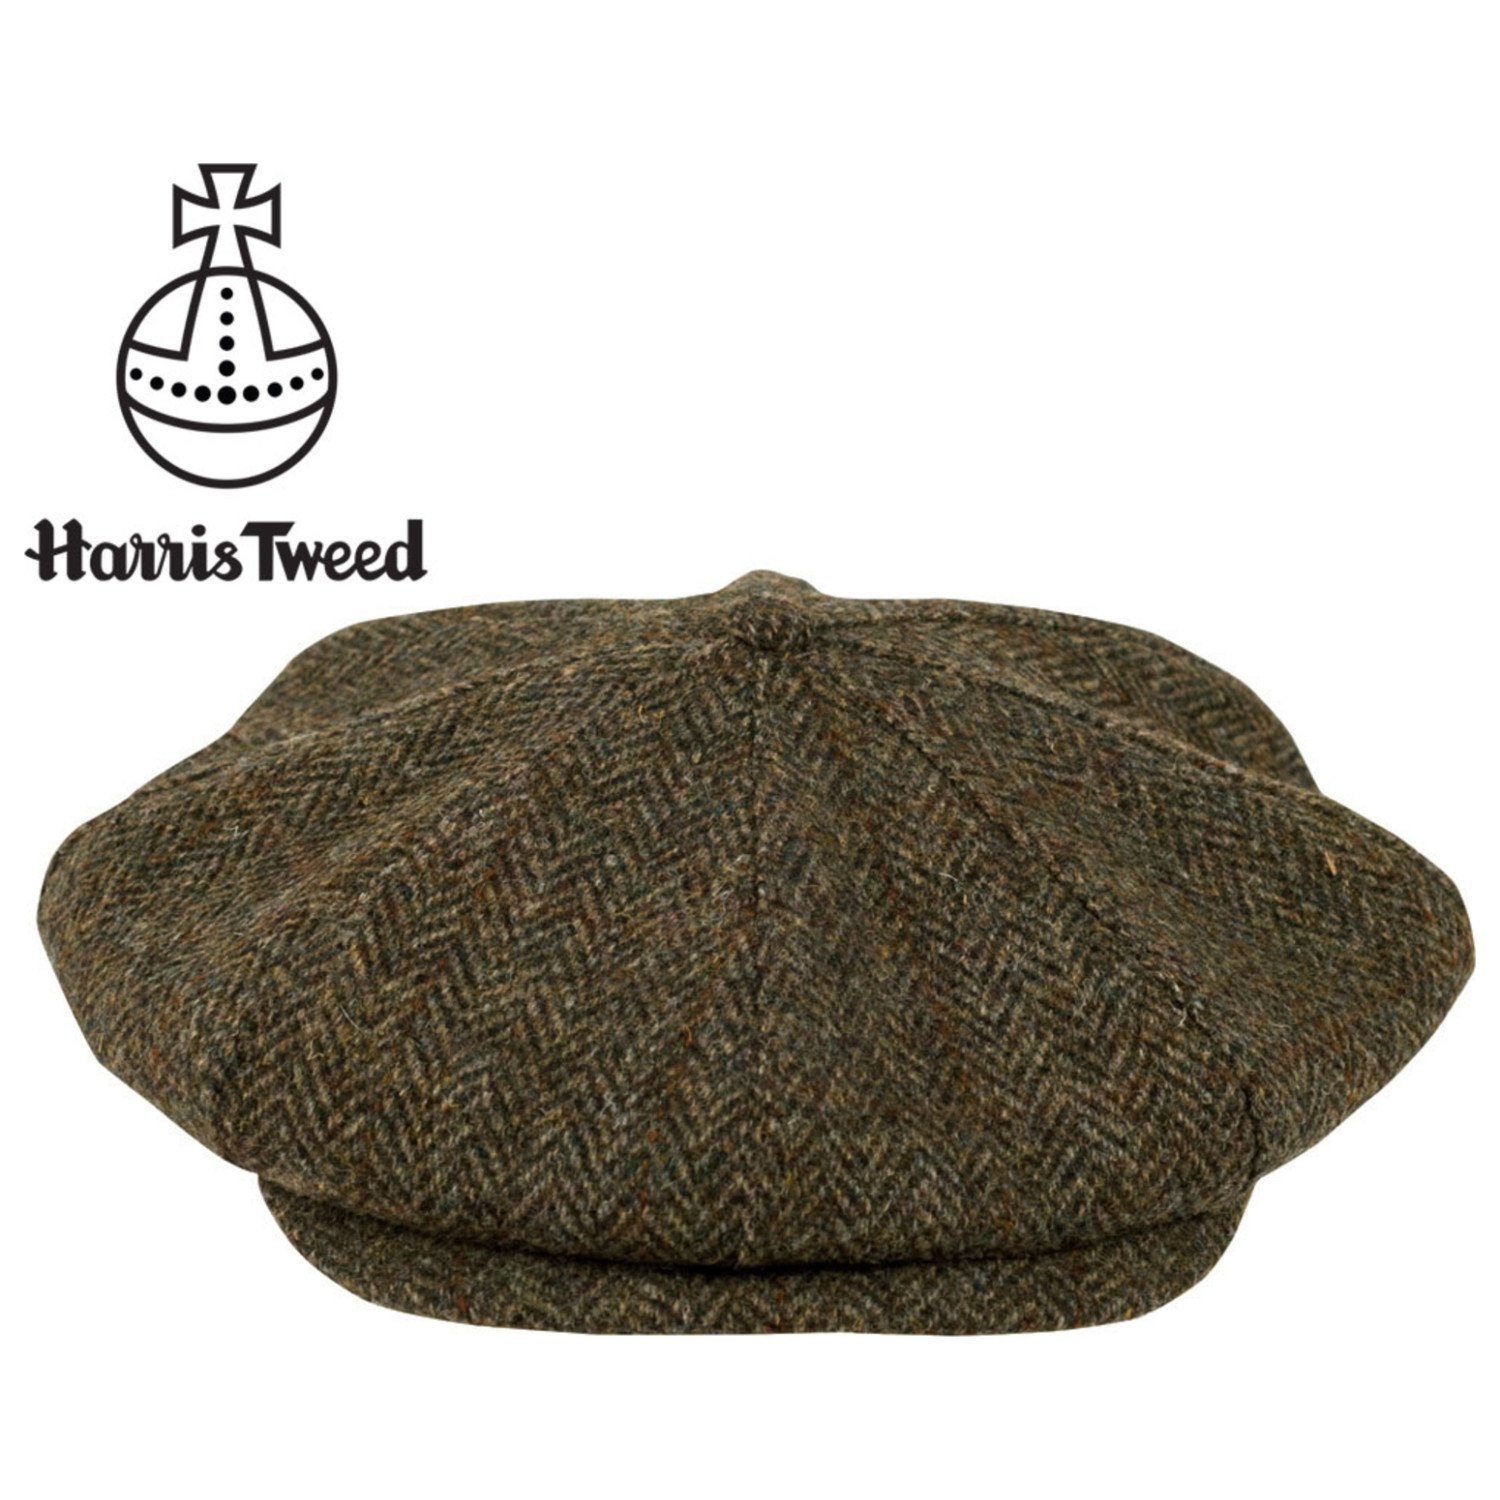 a74efa5004194 Tilley Endurables TNC1 Newsboy Cap - Brown Plaid - L  Amazon.ca  Jewelry